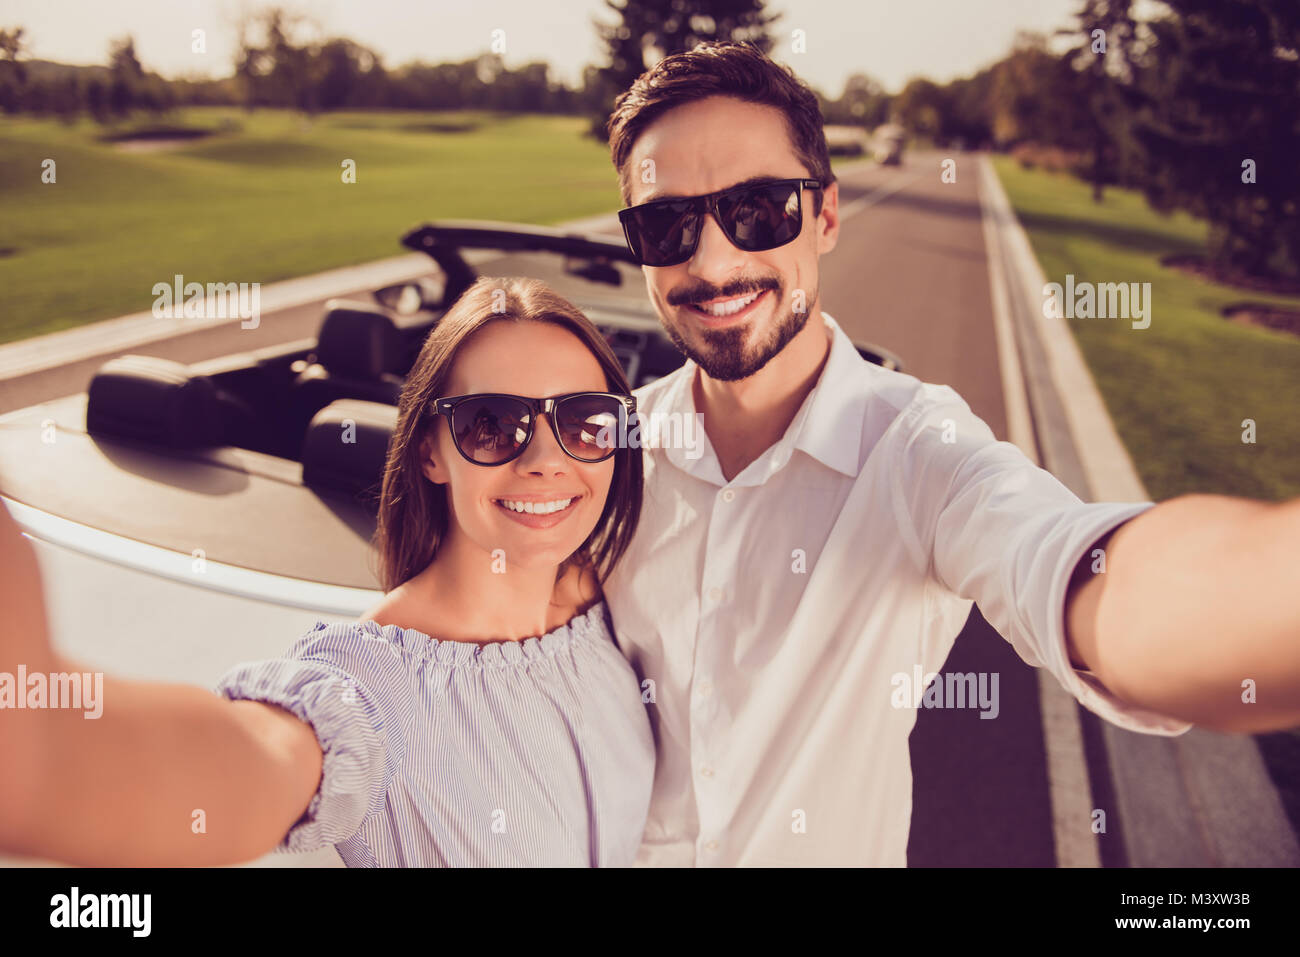 Cute gorgeous sweet partners with beaming grins taking photo on camera, luxury vehicle transportation behind, they - Stock Image